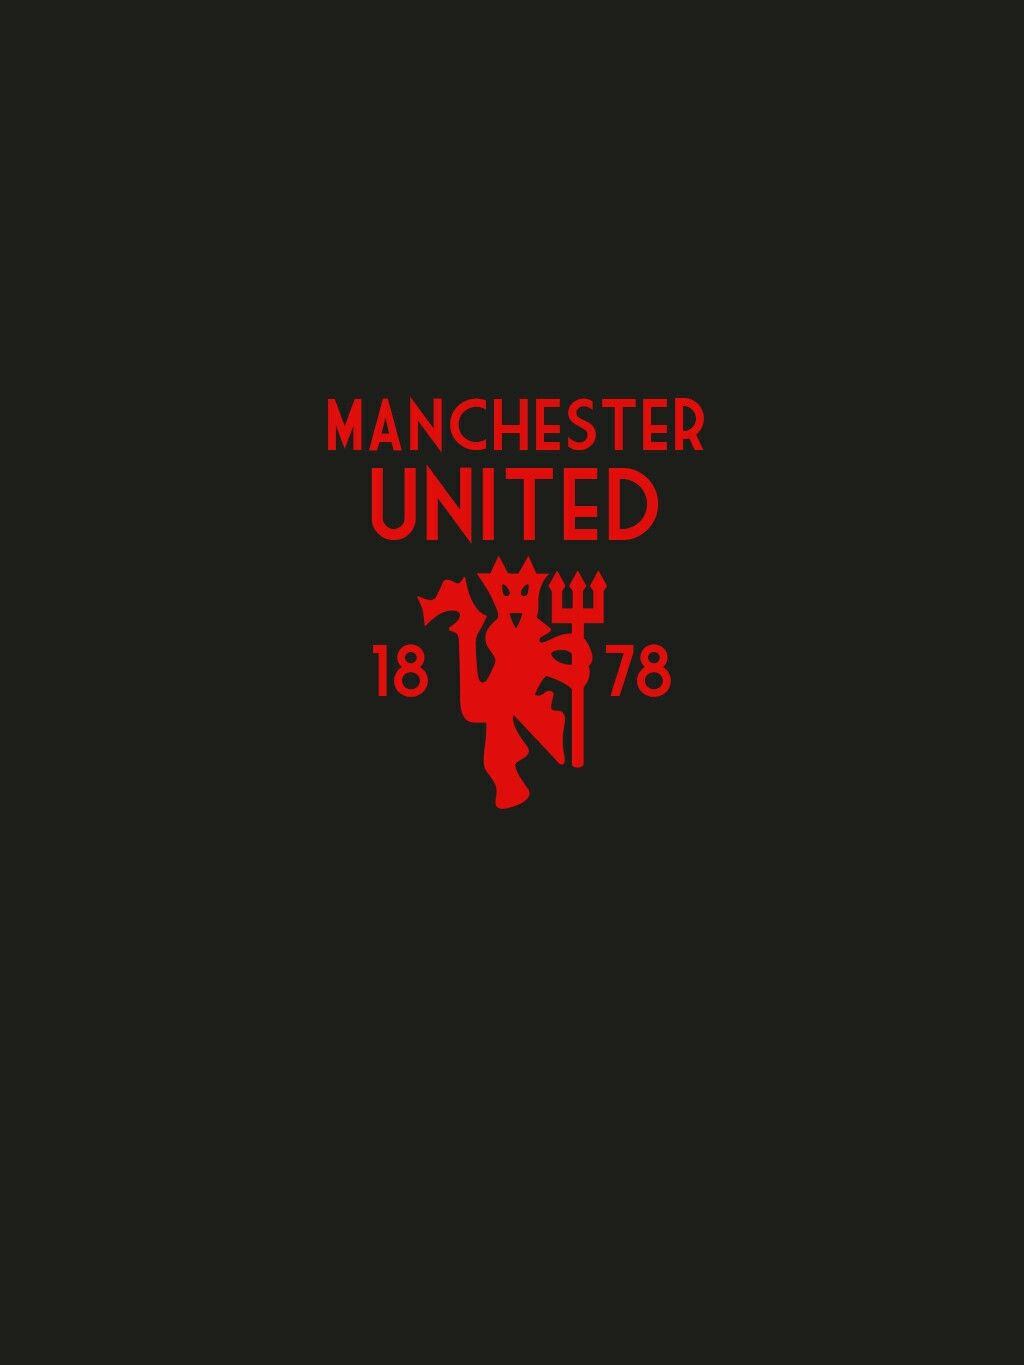 Manchester United Wallpaper 1878